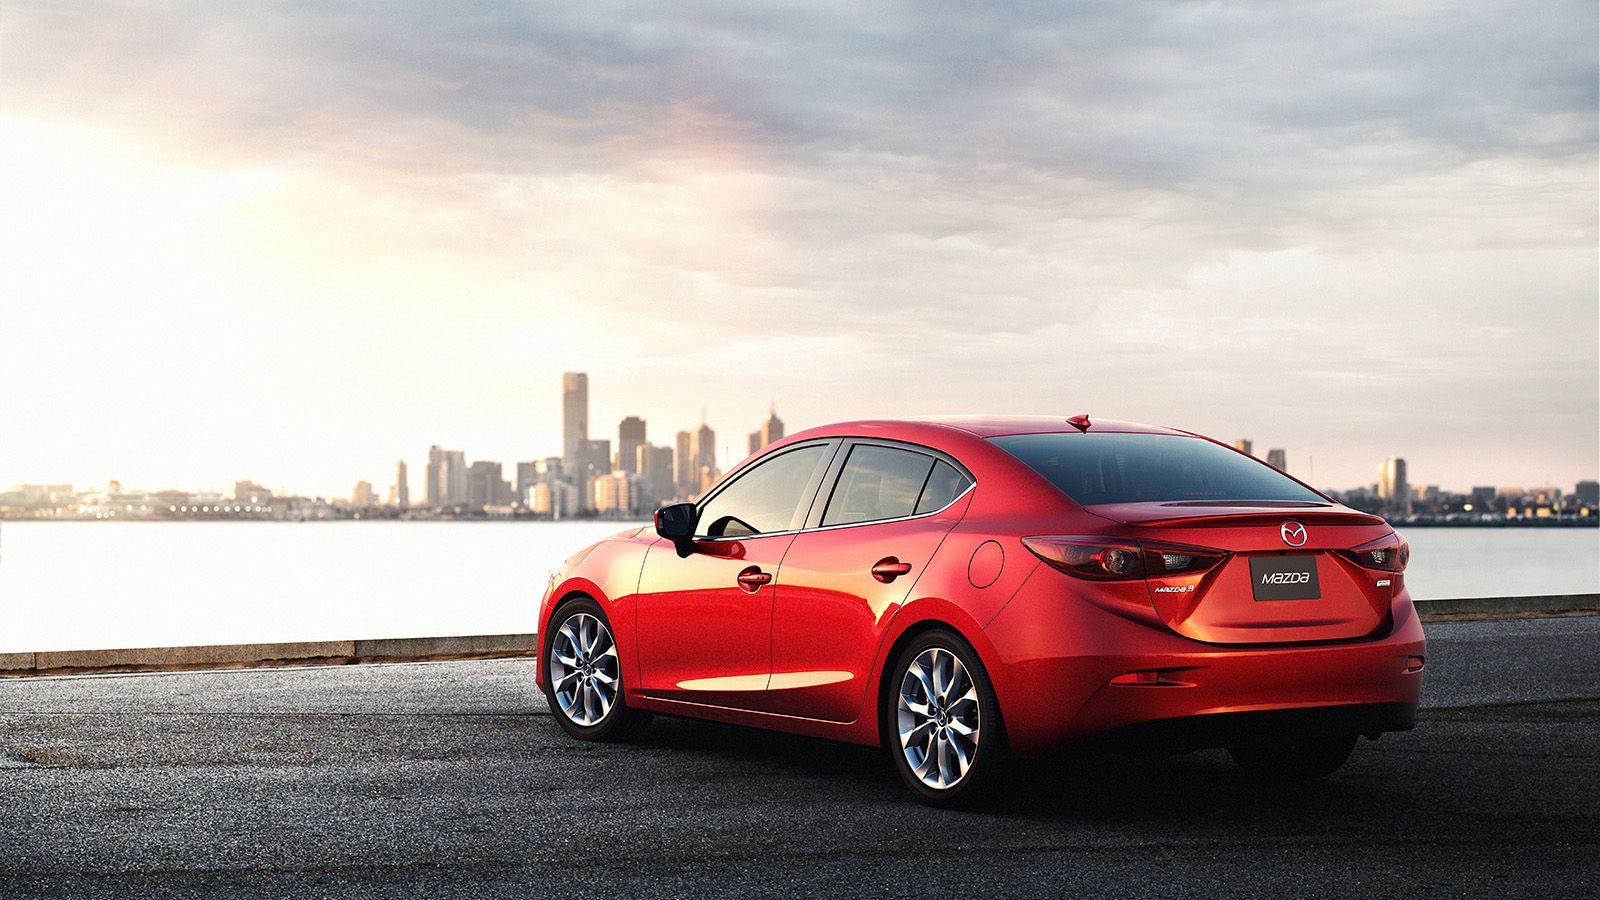 "Find out more about the 2014 Mazda 3 at www.edmontonmazdadealer.com and Get instant Access to Your Free Report ""Everything You Should Know Before Purchasing Your Next Vehicle"" at: http://edmontonmazdadealer.com/free-report"